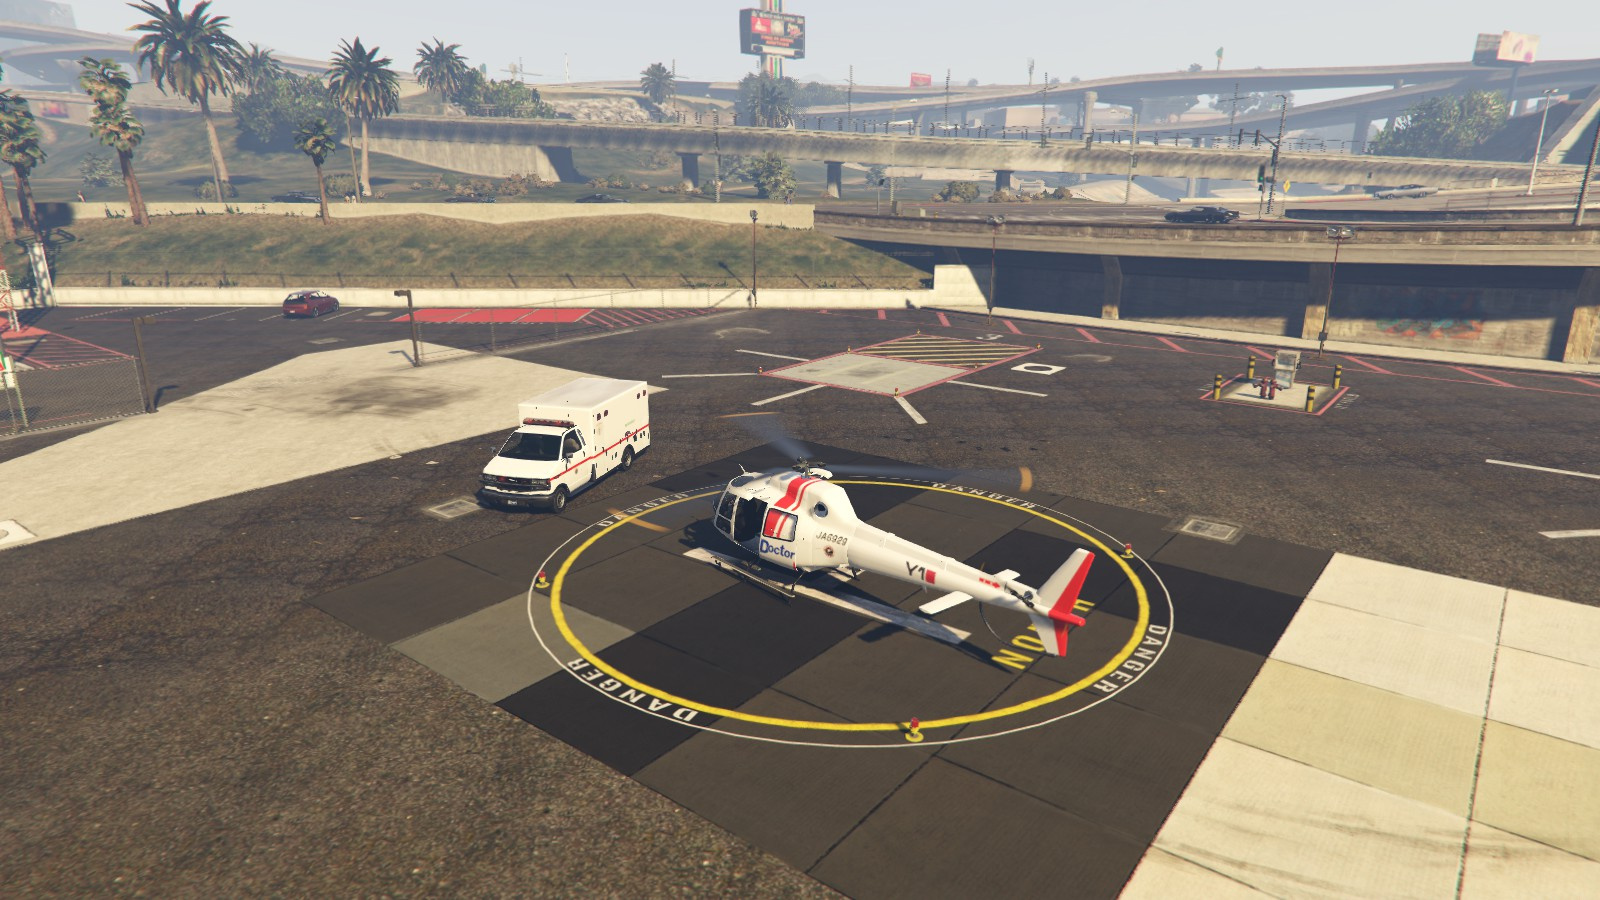 jpn japanese helicopters for emergency services gta5 mods com